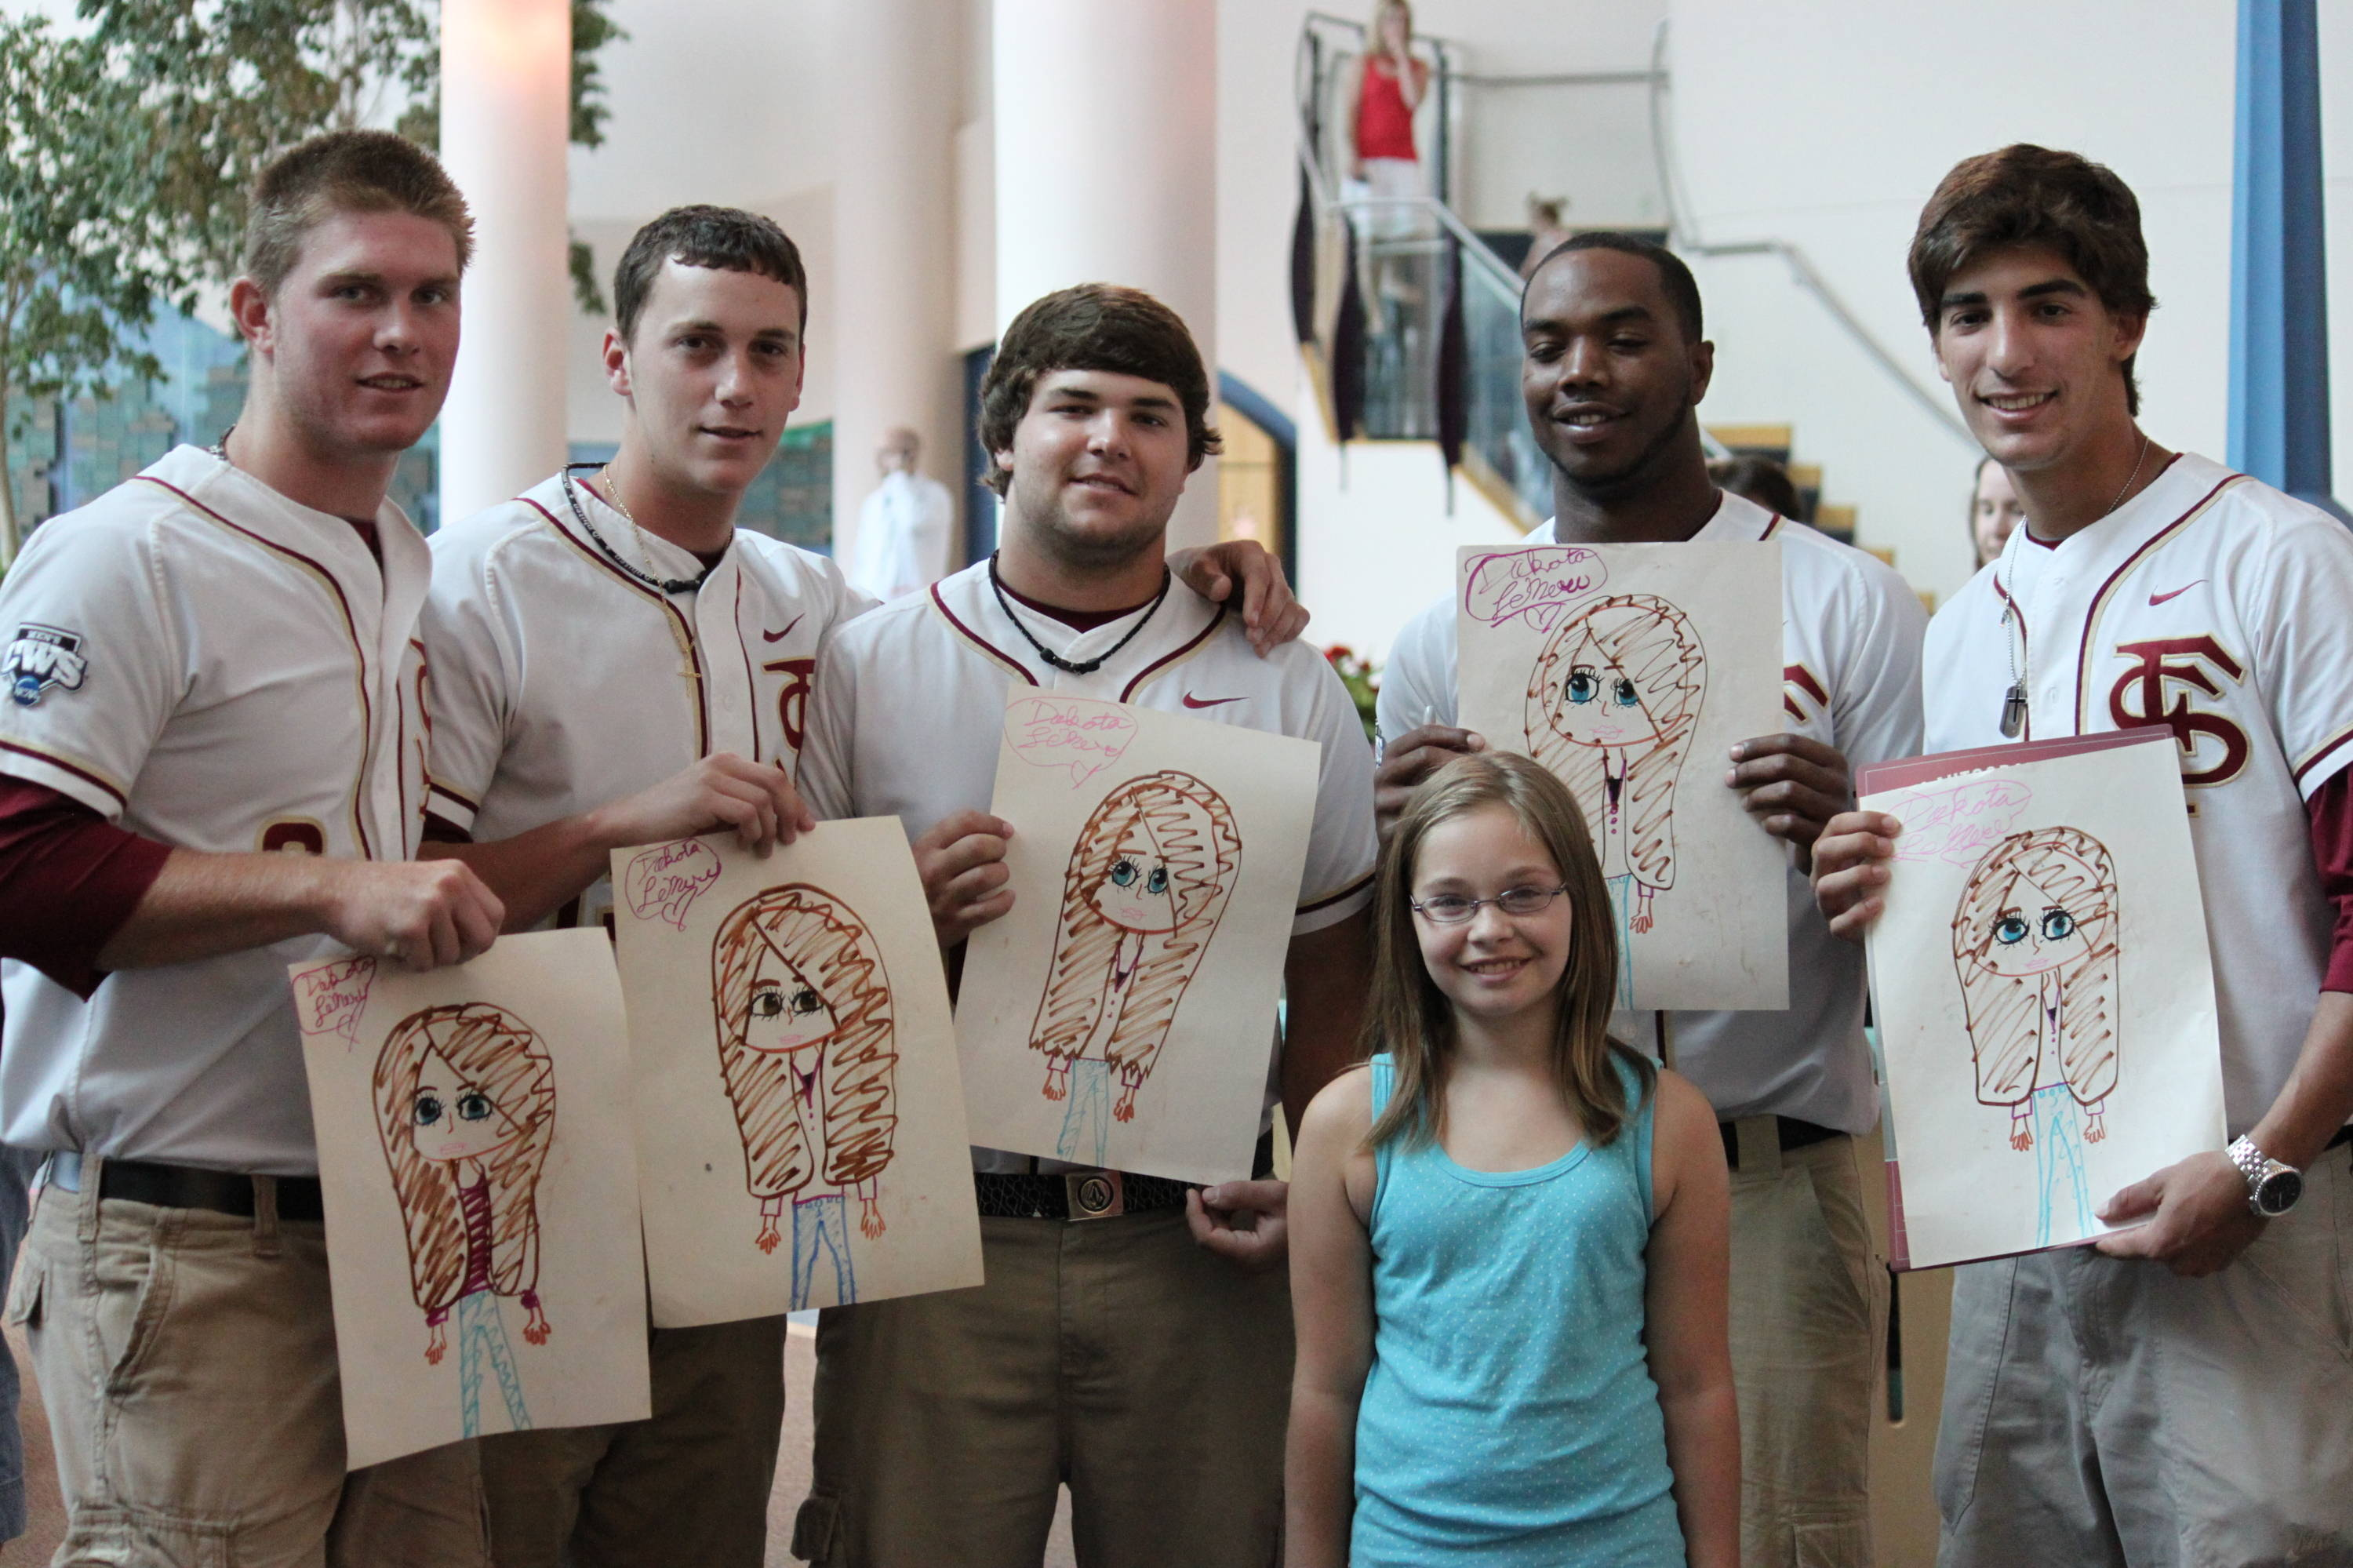 Stephen McGee, Robert Benincasa, Scott Sitz, Taiwan Easterling and Justin Gonzalez show off their art work during their visit to the Children's Hospital.